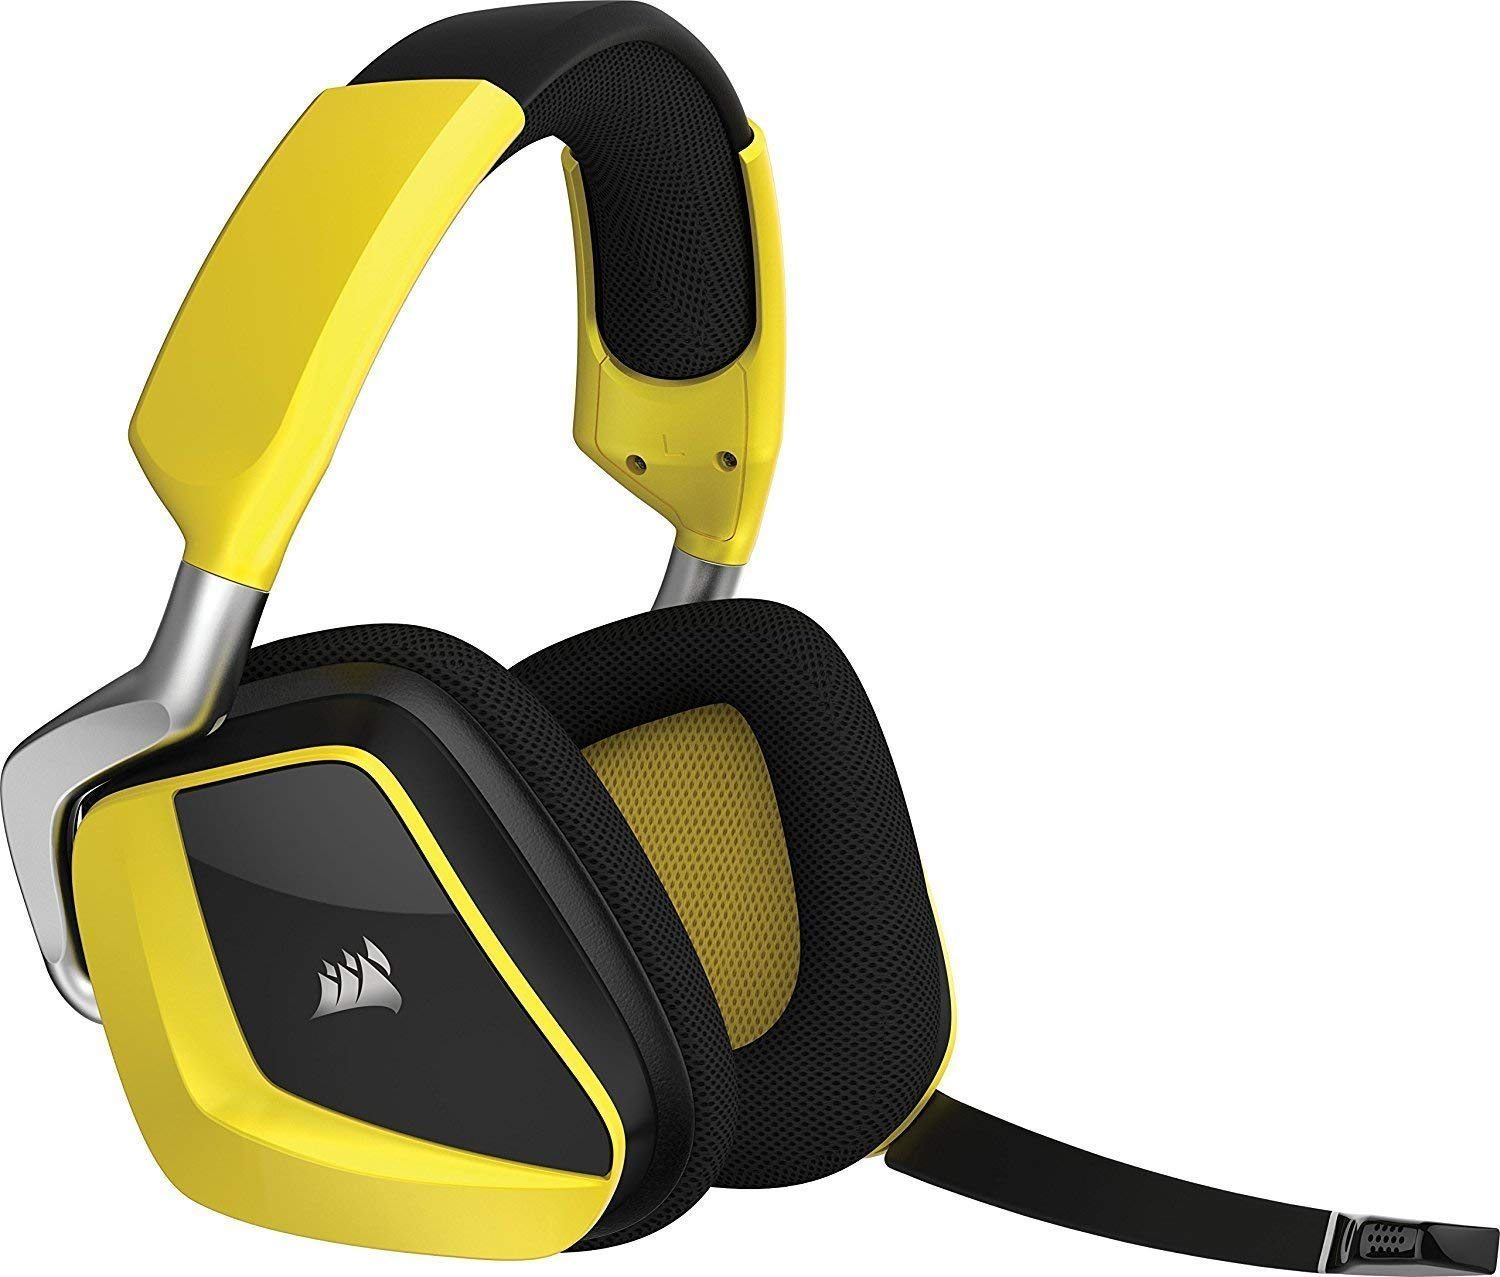 CORSAIR-Void-PRO-RGB-Wireless-Gaming-Headset-Dolby-71-Surround-Sound-Headphones-for-PC-Discord-50mm-Drivers-Yellow-Renewed